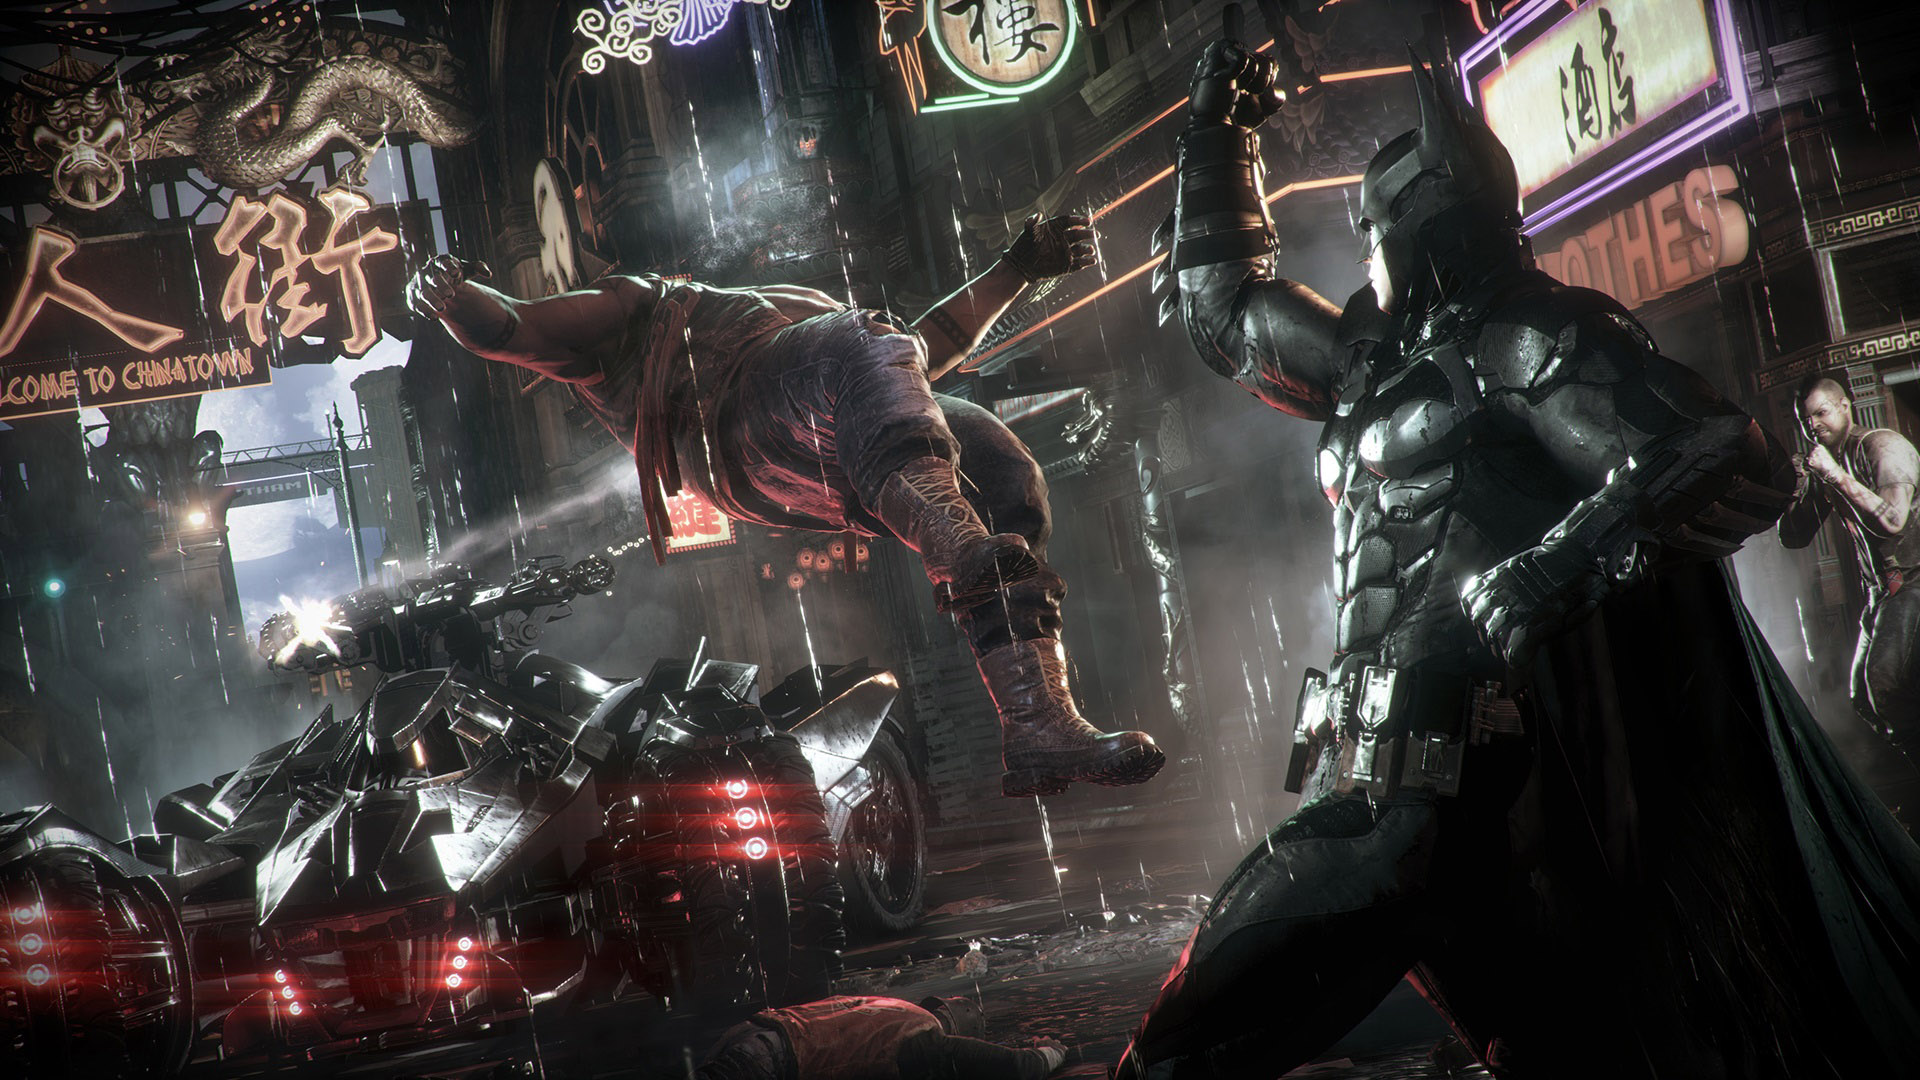 http://data.techtimes.com/data/images/full/14559/batman-arkham-knight-gamescom-2-jpg.jpg